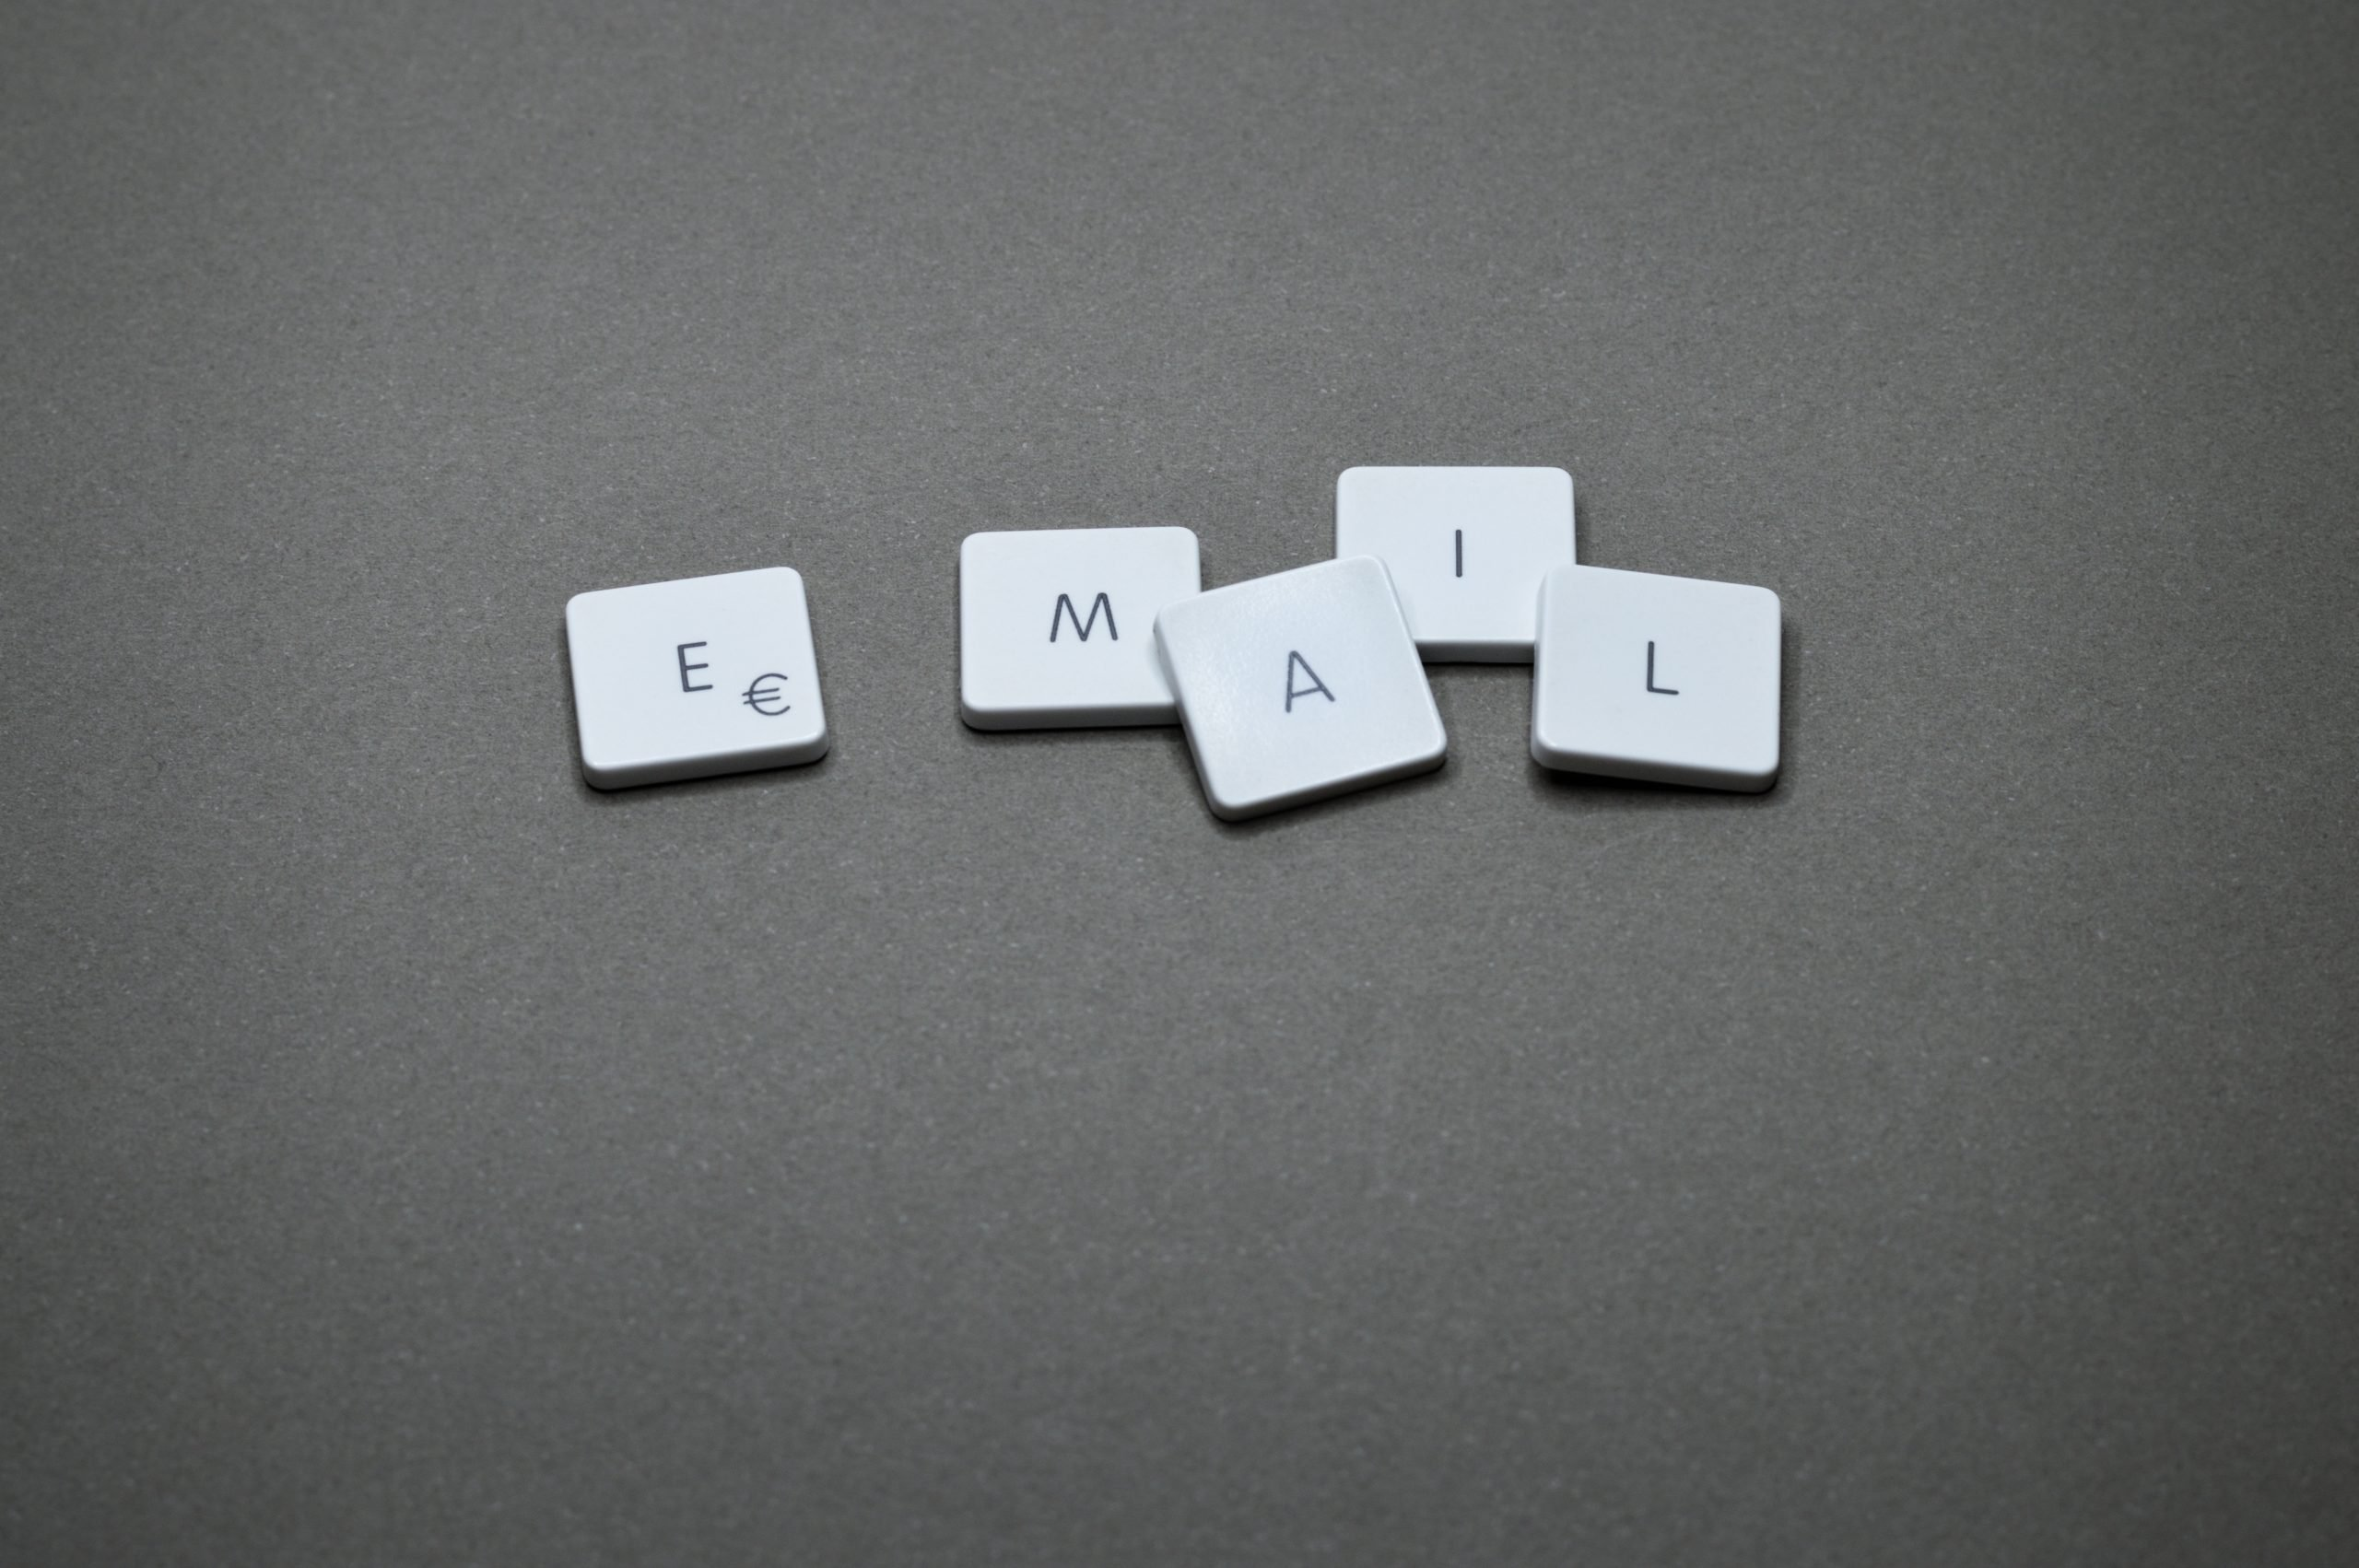 email-blocks-on-gray-surface-1591062